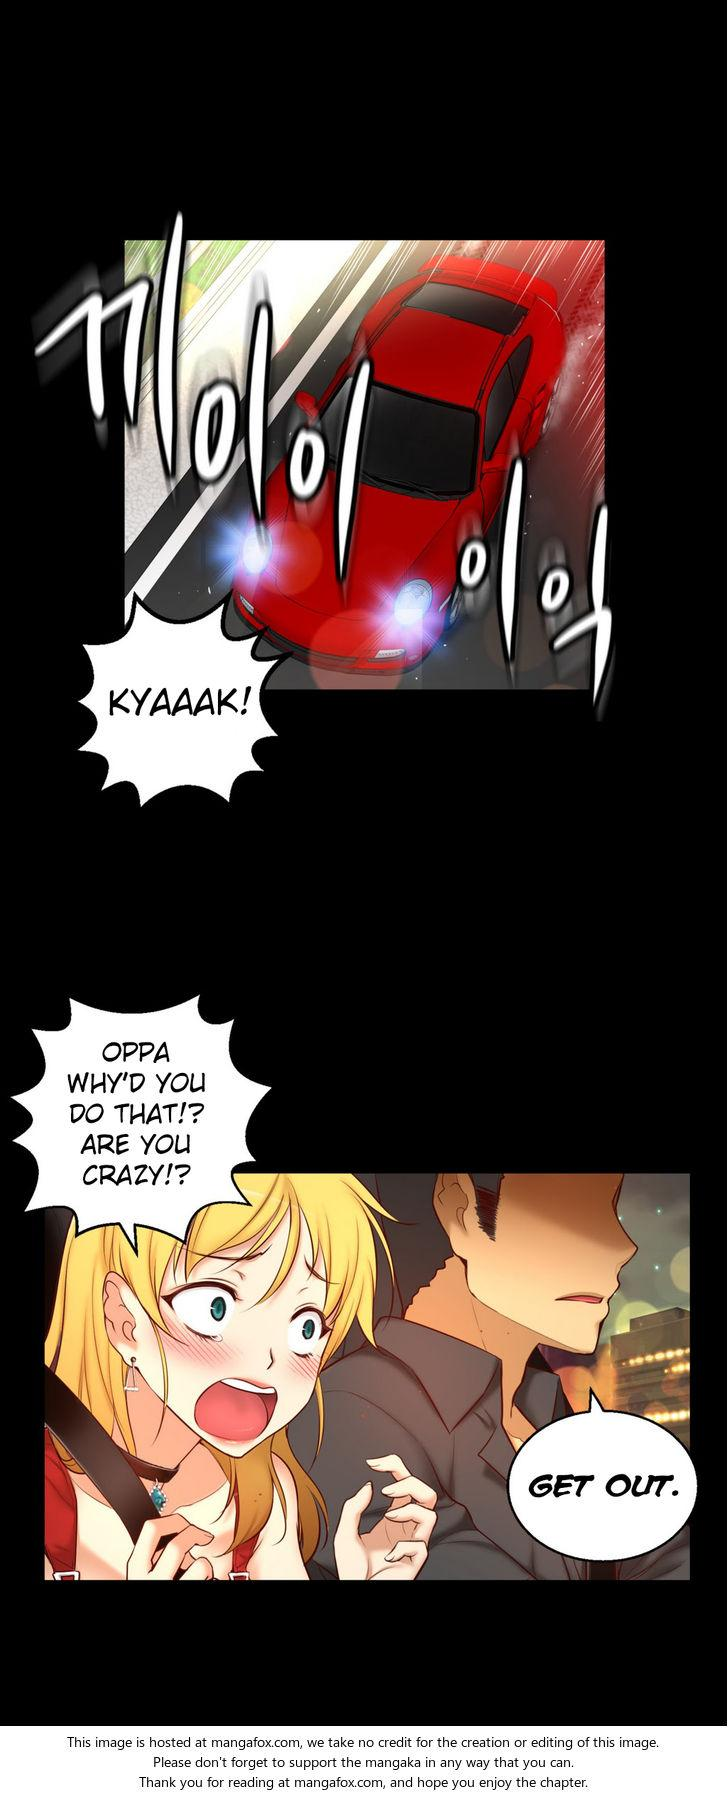 [Donggul Gom] She is Young (English) Part 1/2 1094